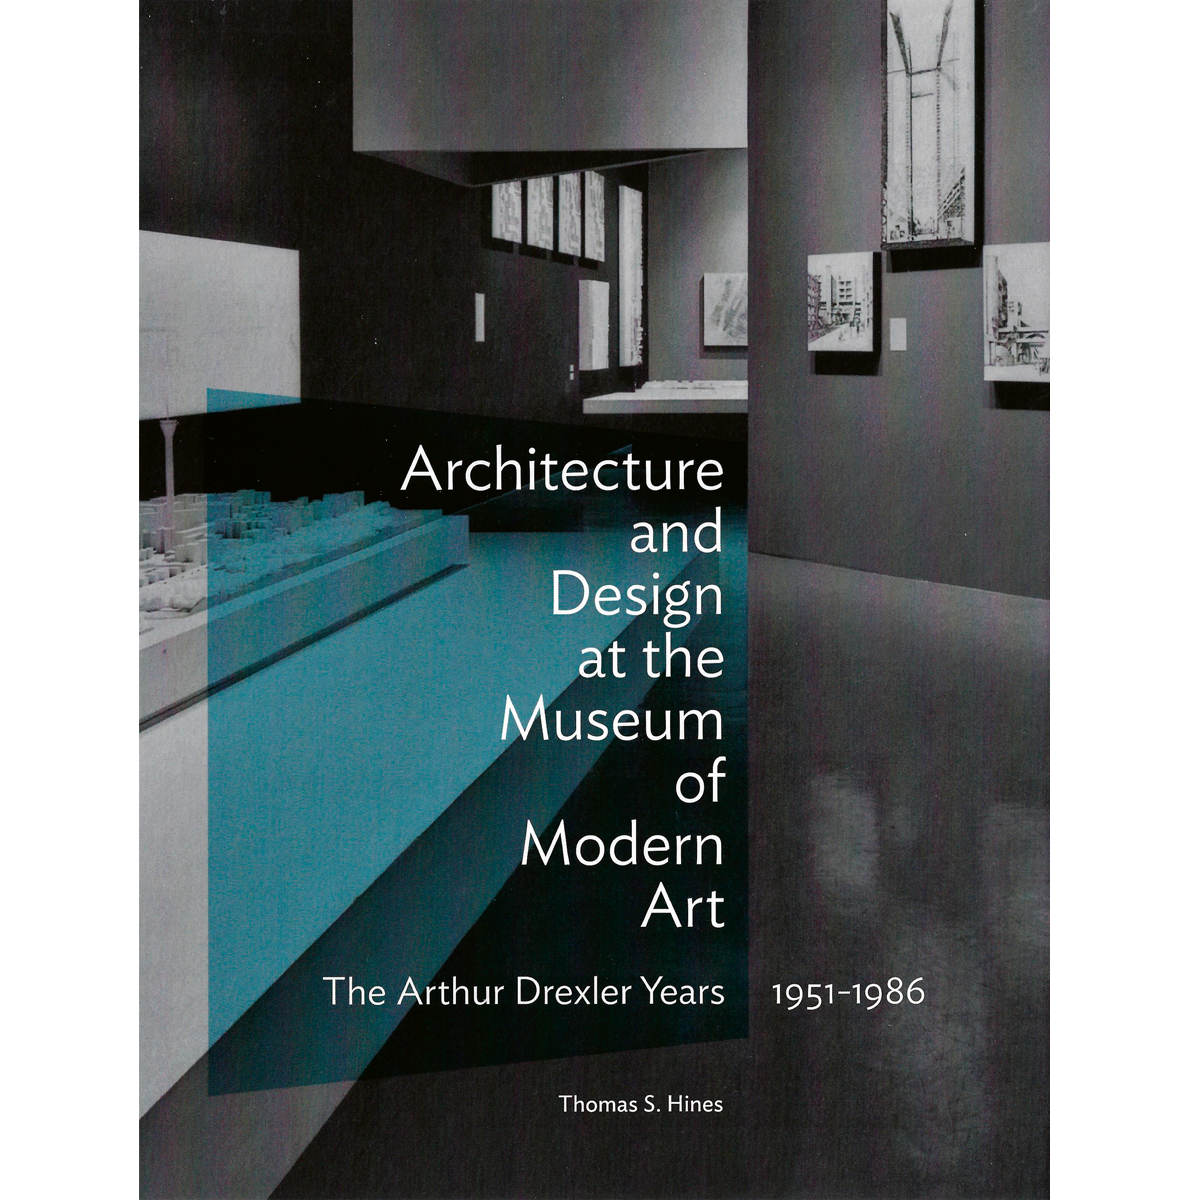 Architecture and Design at the Museum of Modern Art